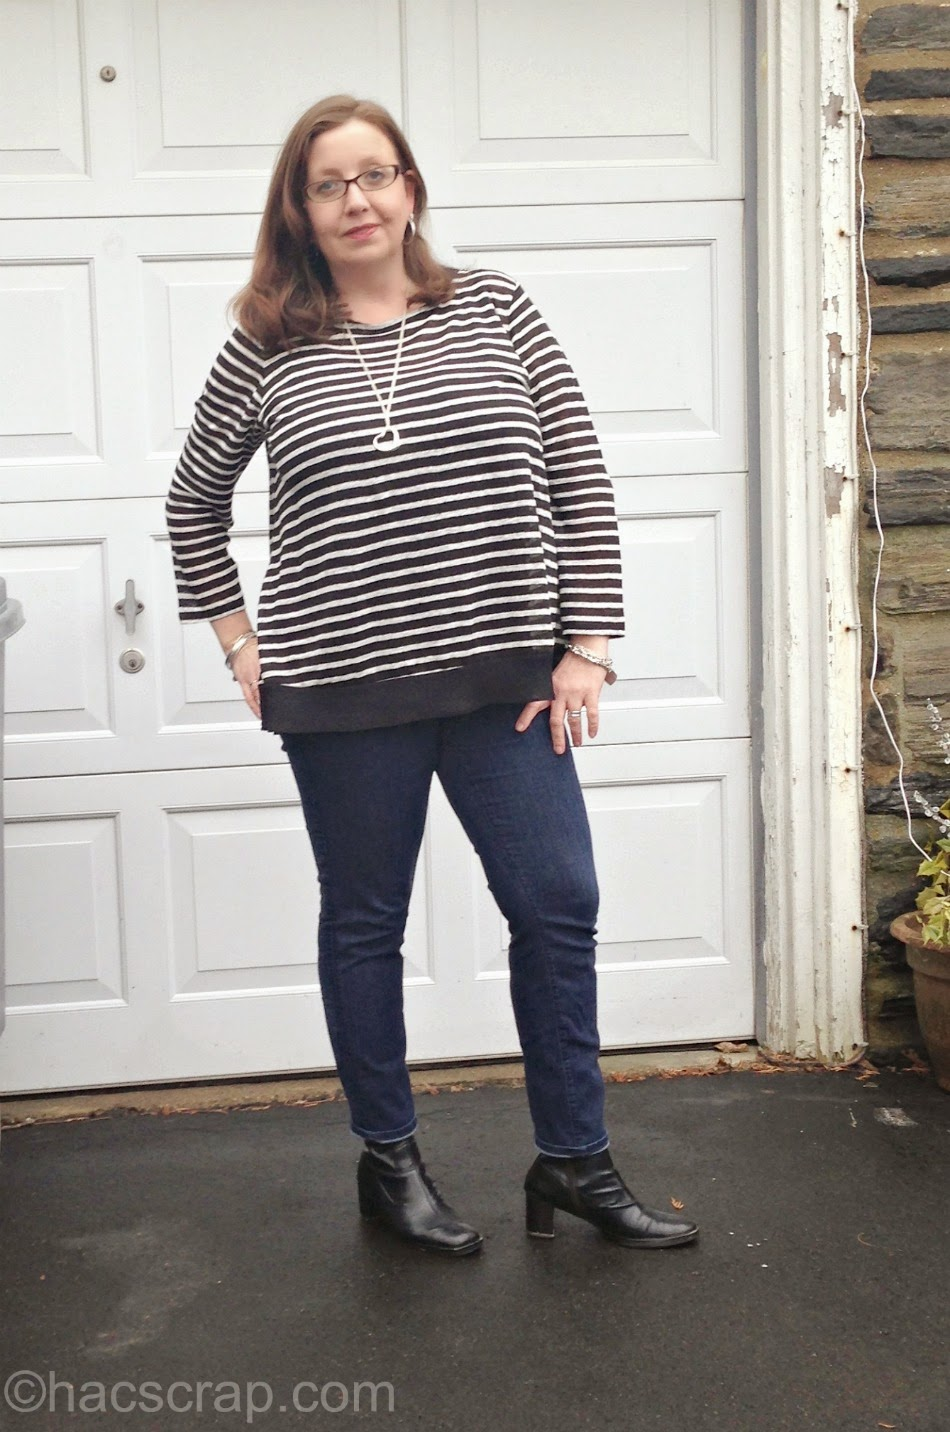 Striped T-Shirt from Ralph Lauren, Styled with Skinny Jeans and Black Ankle Boots